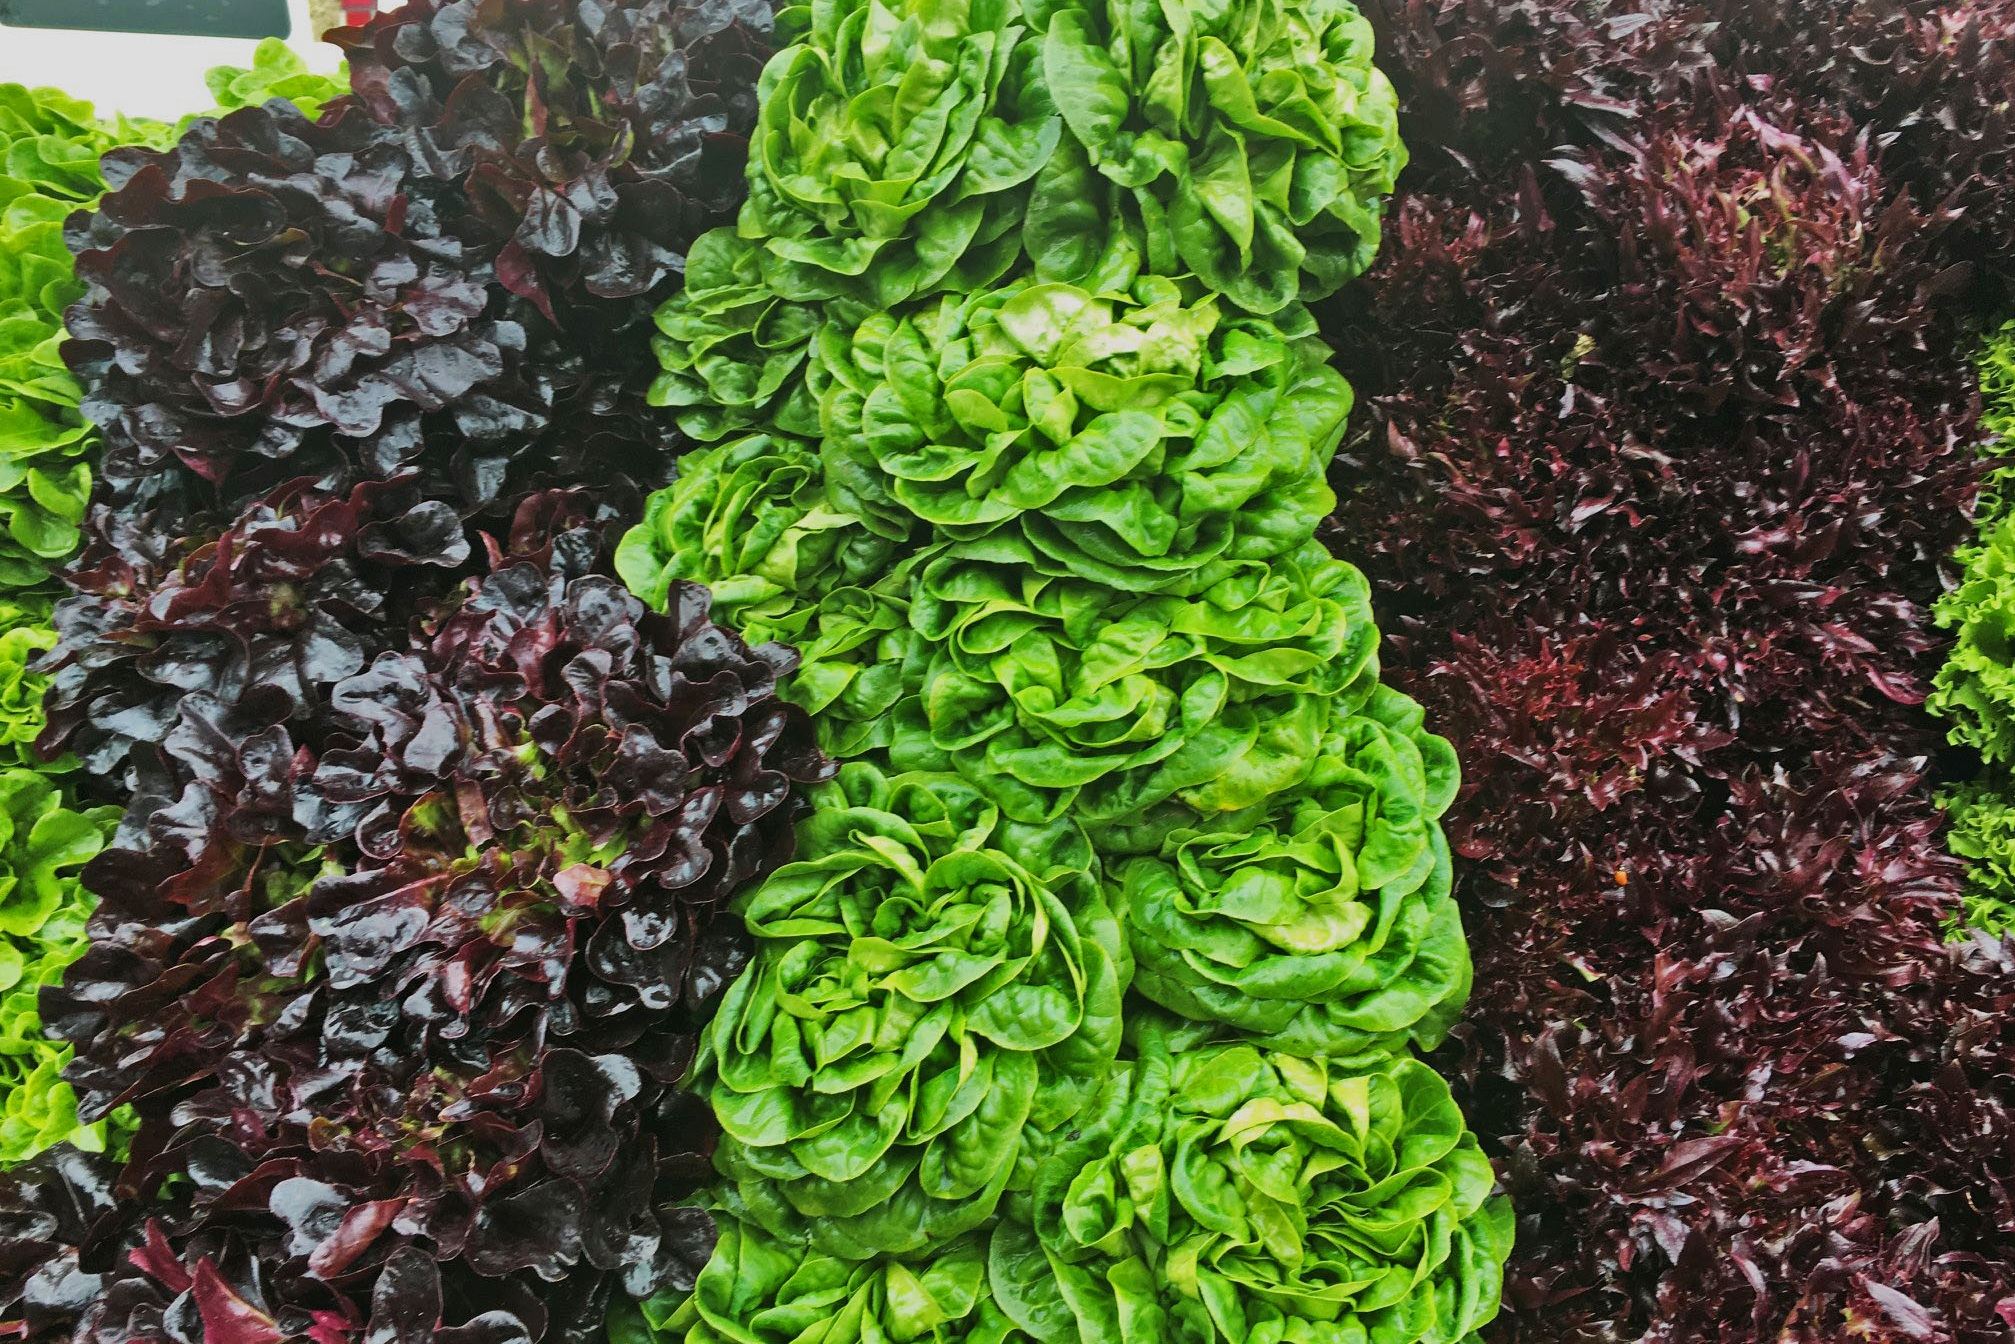 Salanova Lettuce is a variety of head lettuce that is truly eye-catching in our display. Not to mention mighty tasty!